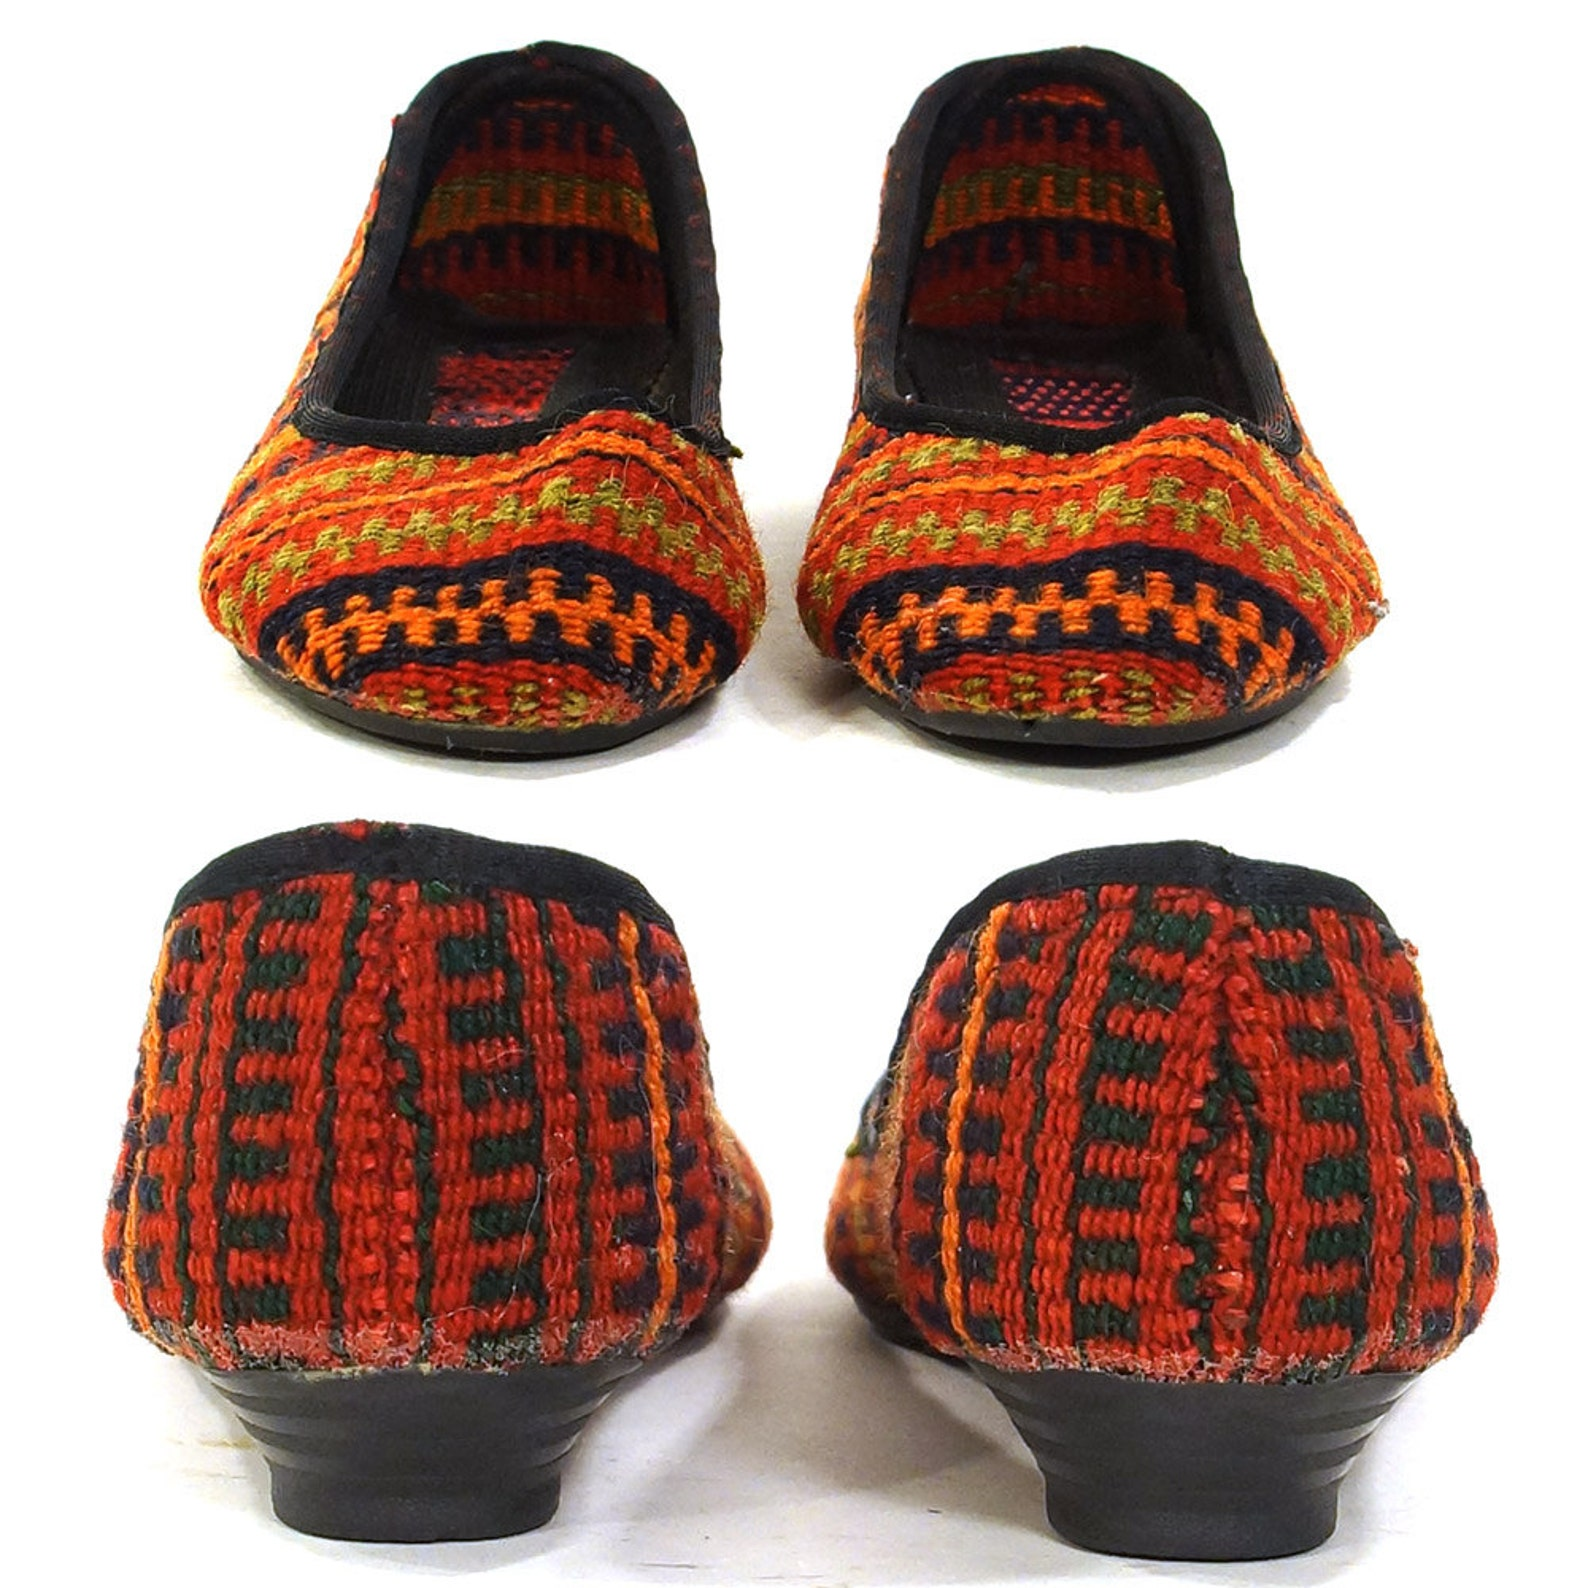 kilim ballet flats vintage 90s slip on carpet loafers woven ethnic boho hippie southwestern tapestry shoes round toe stripe patt